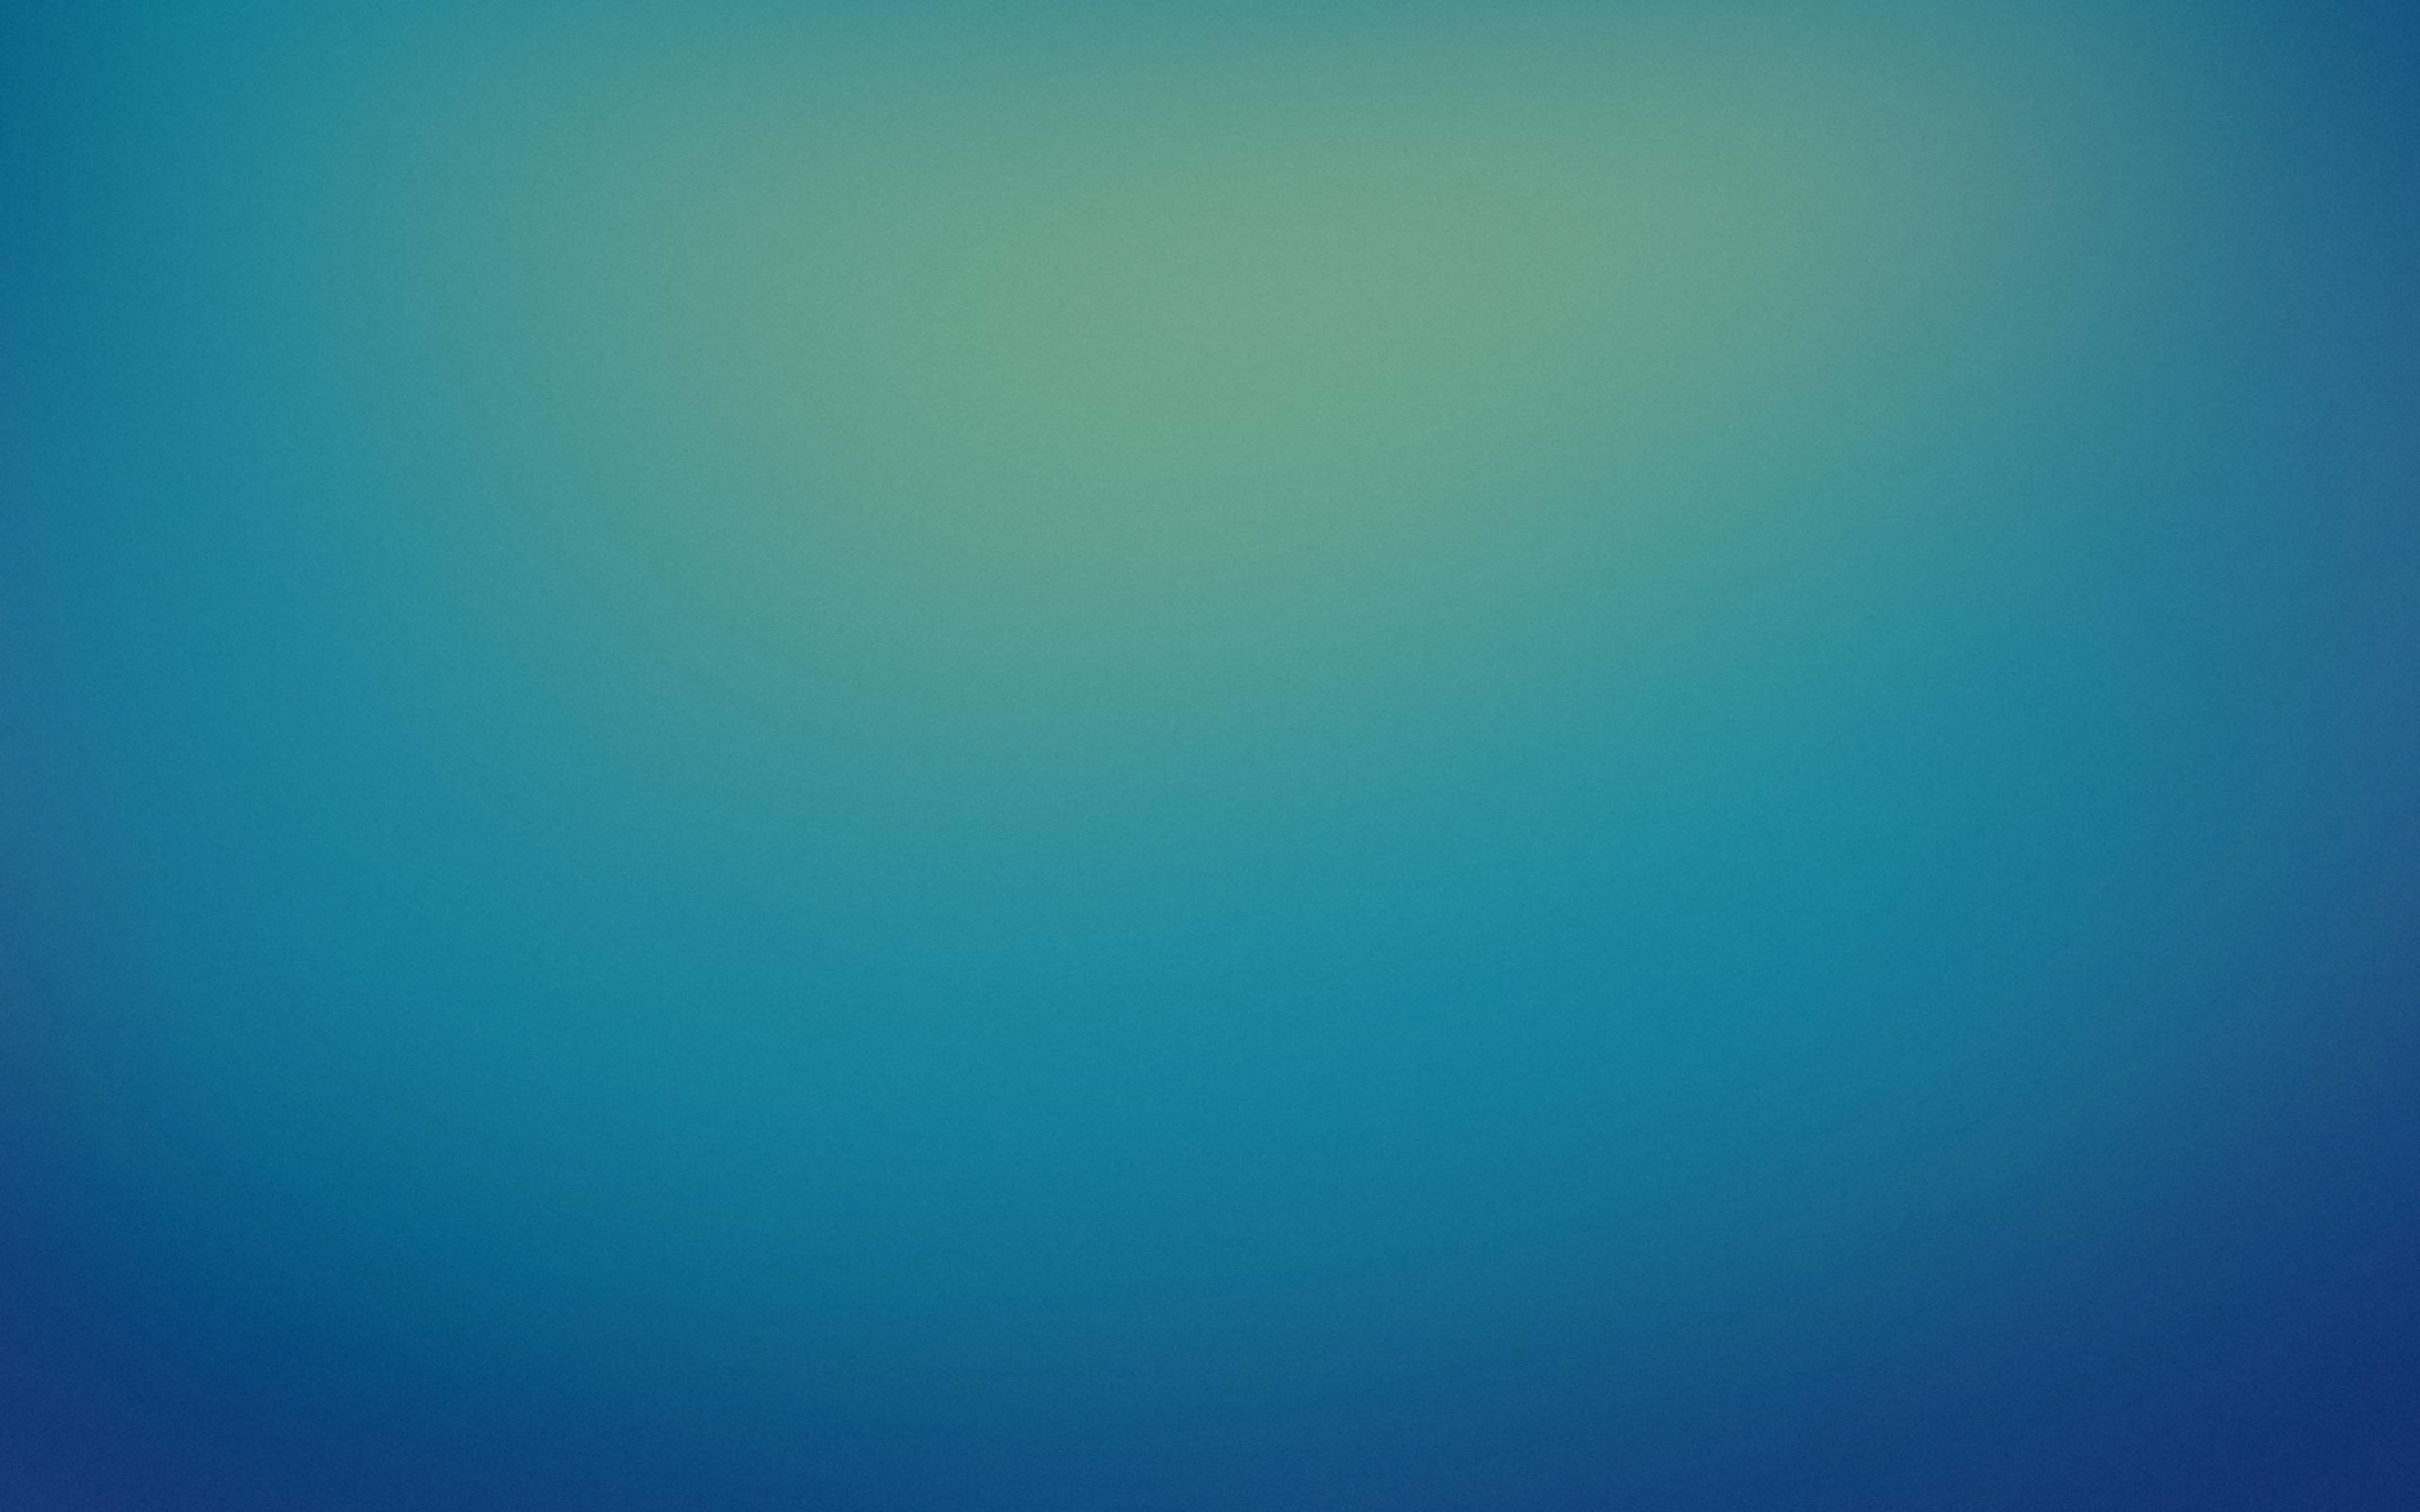 solid color wallpaper – DriverLayer Search Engine